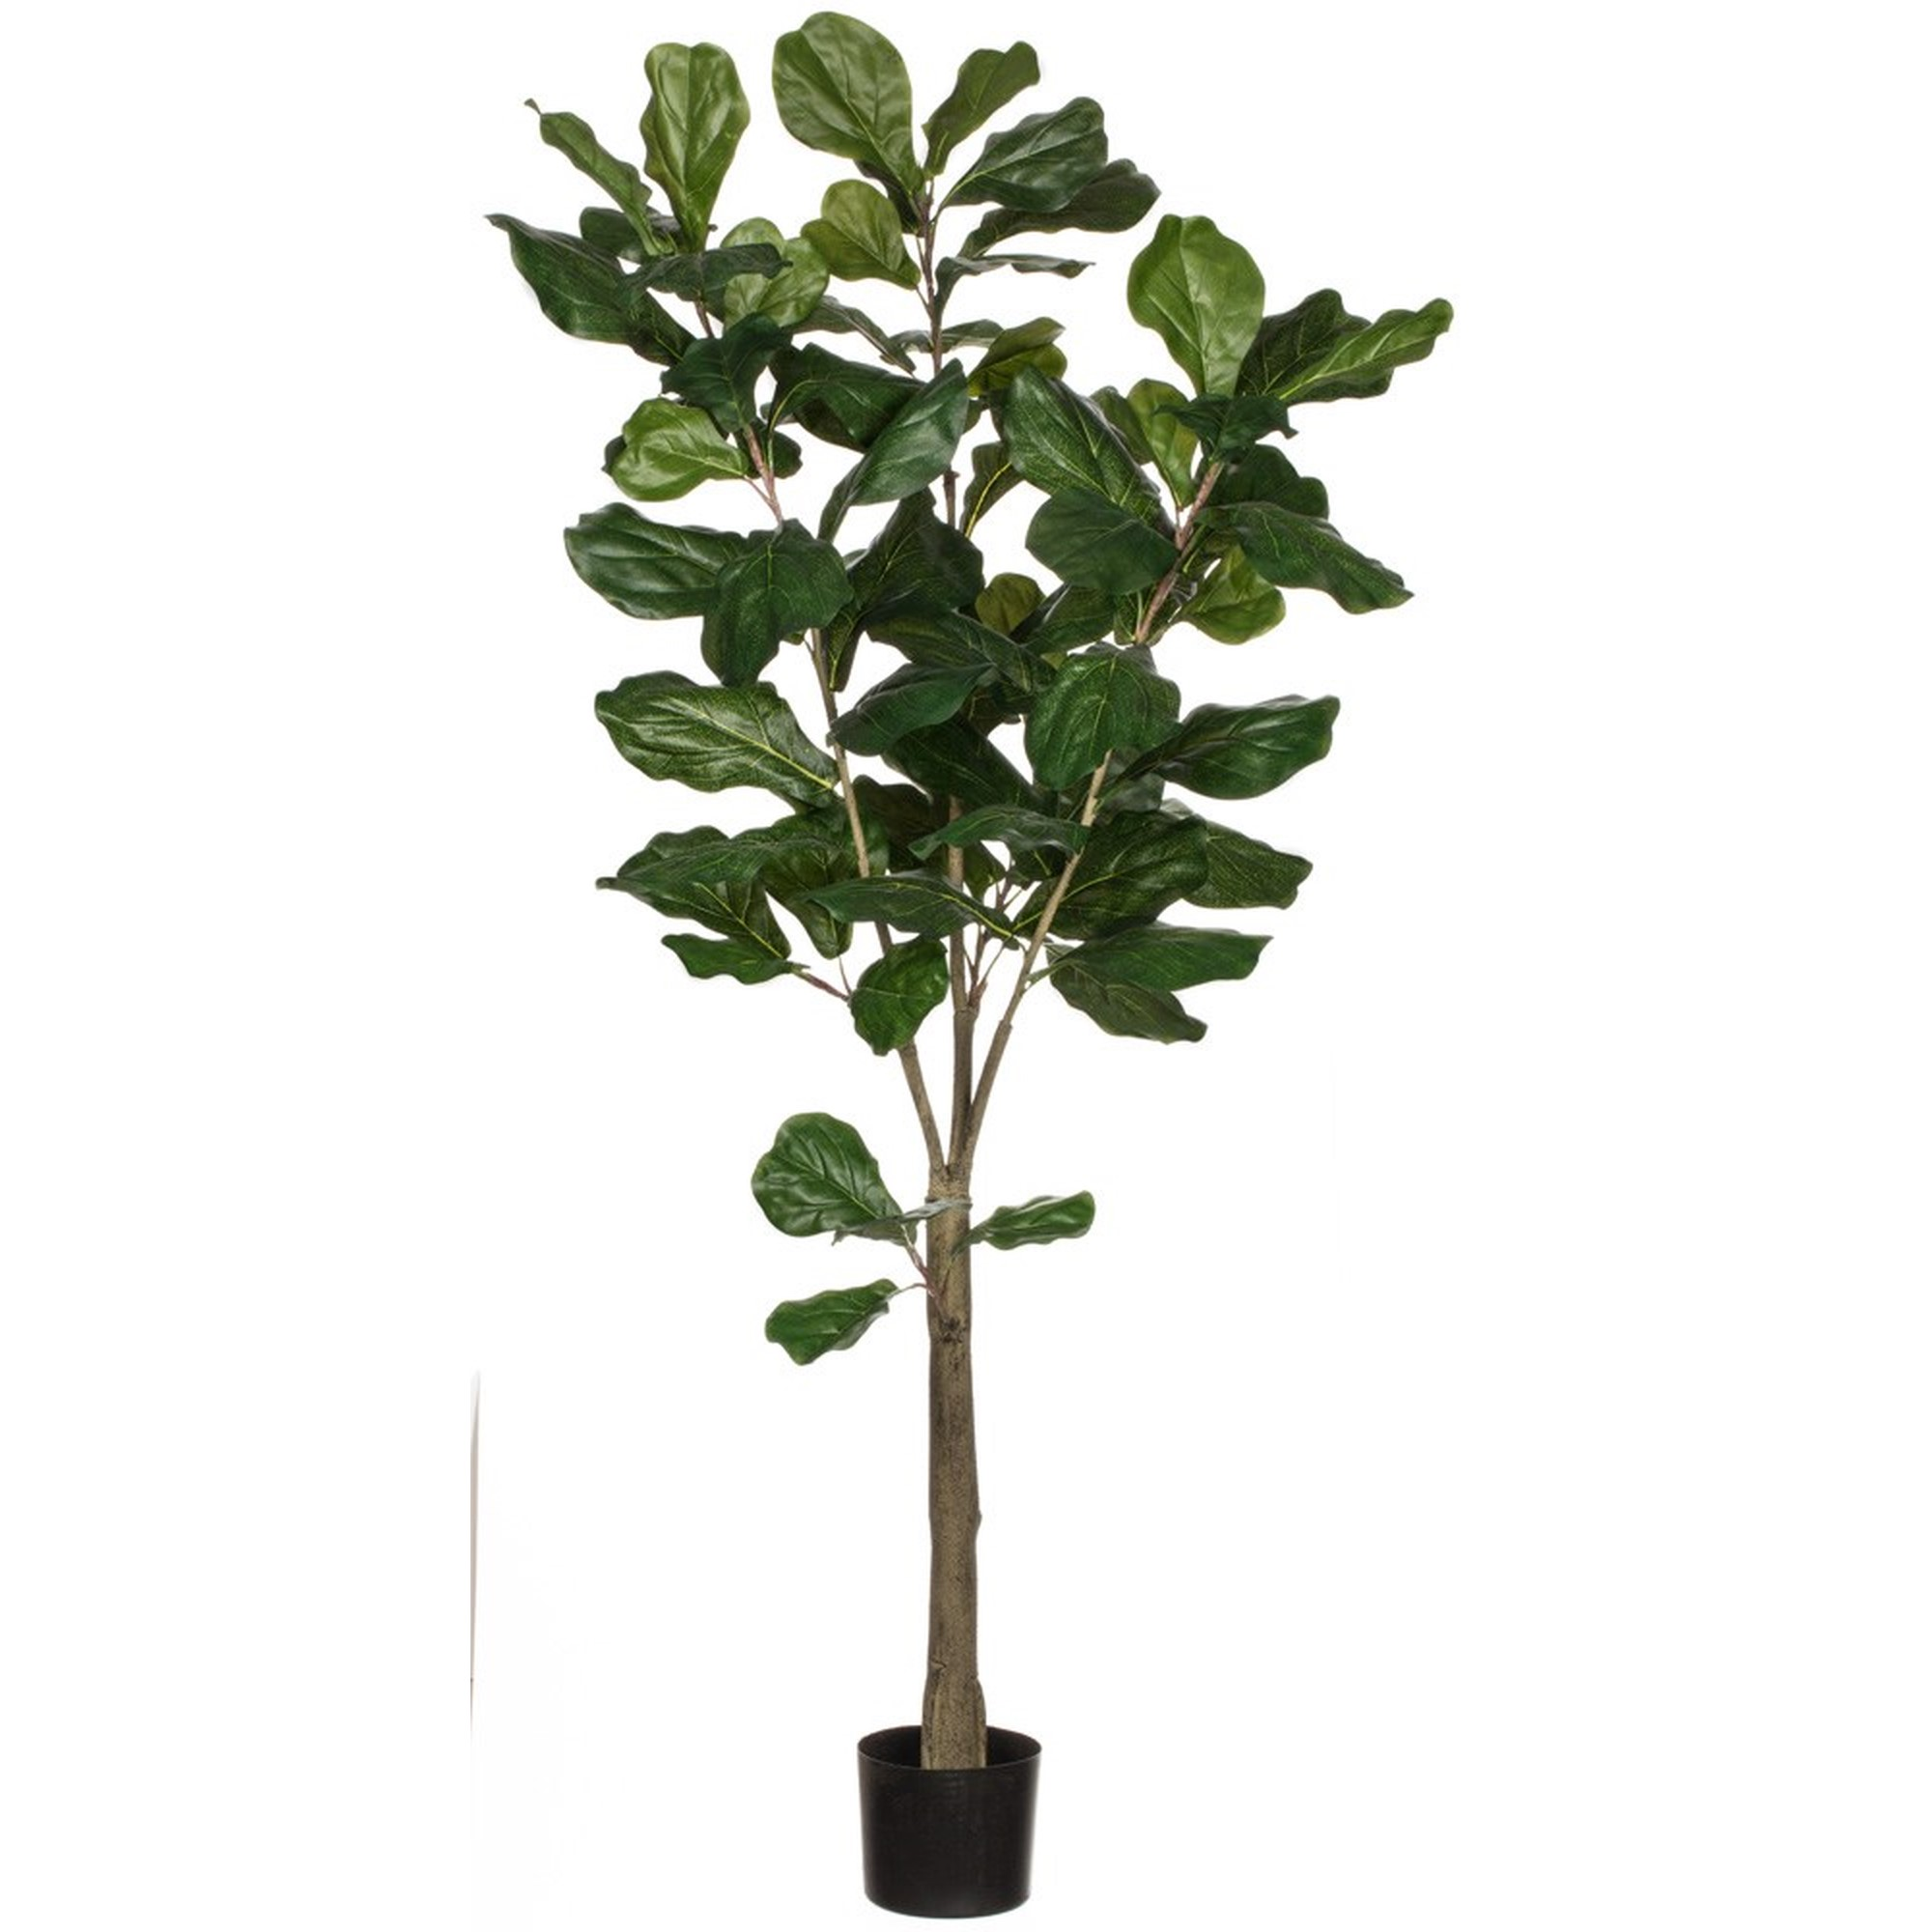 5' Fiddle Leaf Tree, Amanda's House Of Elegance  ($179.95)